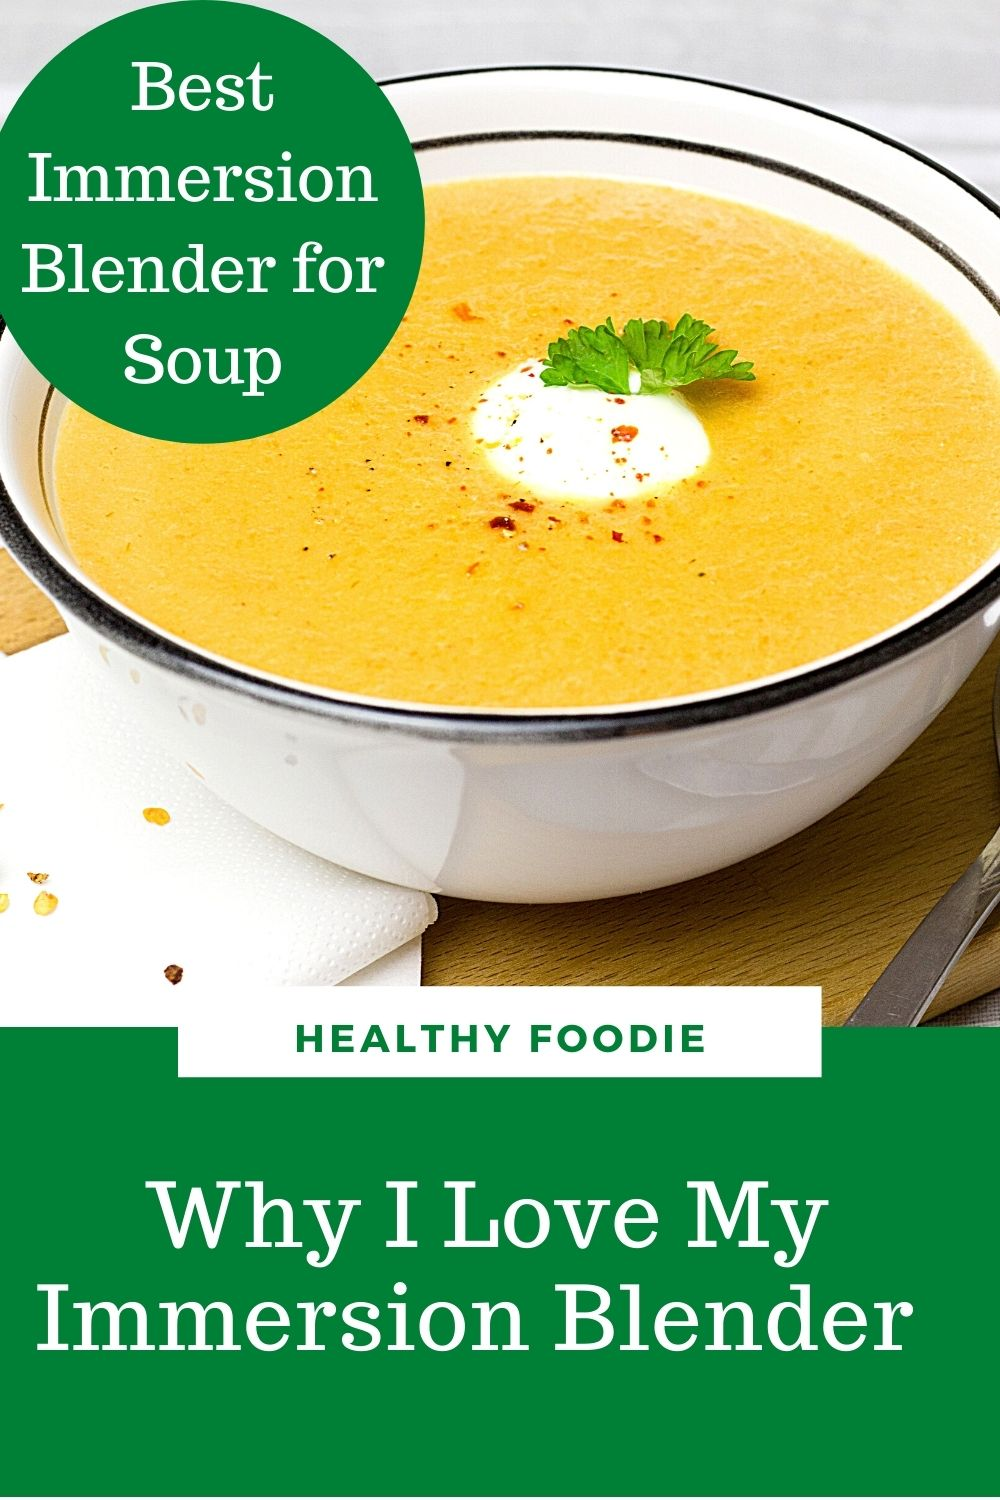 Best immersion blender for soup